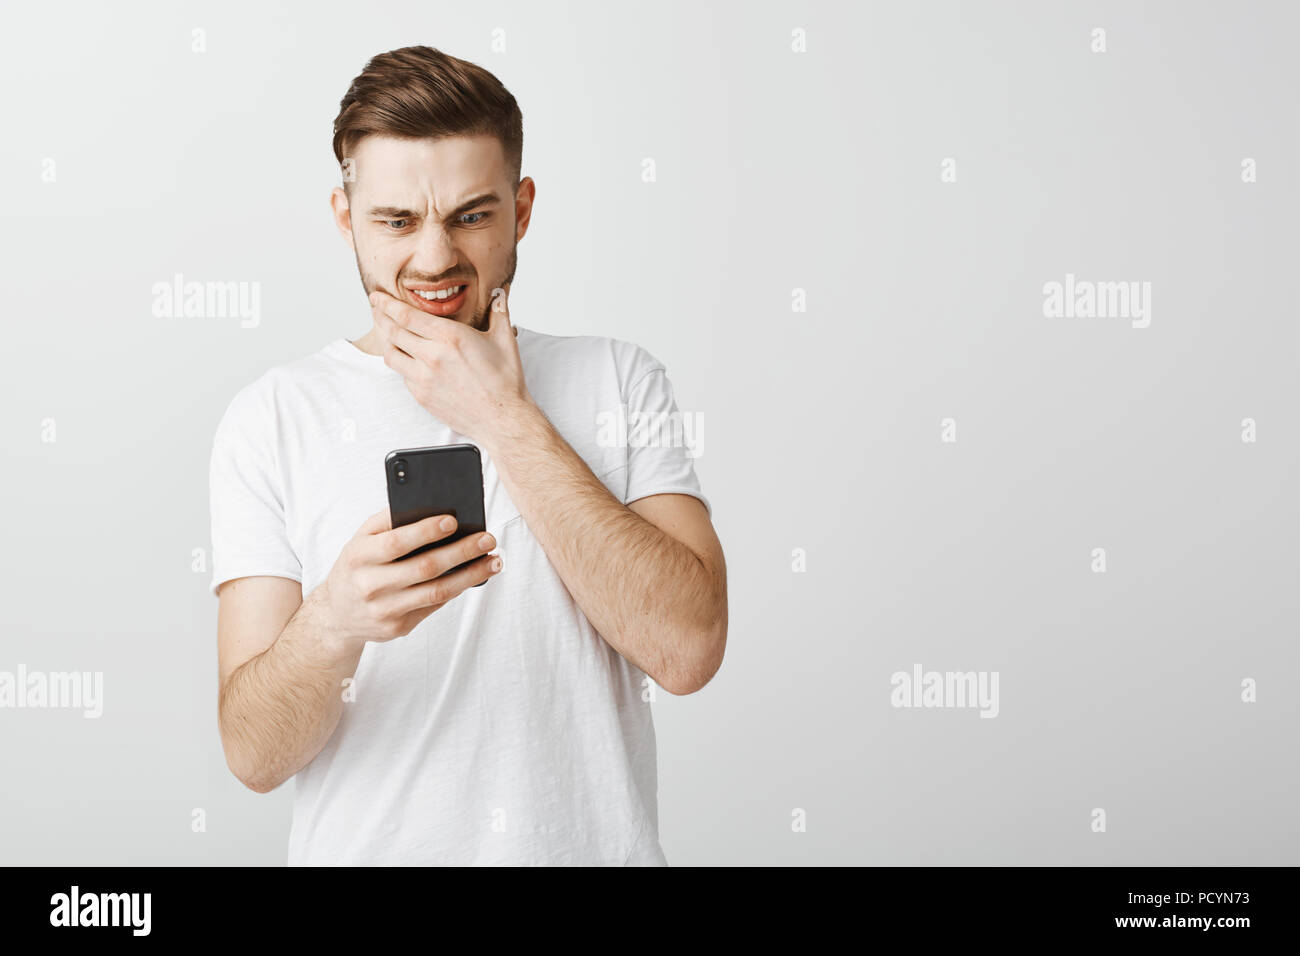 Guy send message to wrong person feeling anxious and concerned rubbing beard frowning and grimacing with opened mouth staring shook, worried at smartp - Stock Image